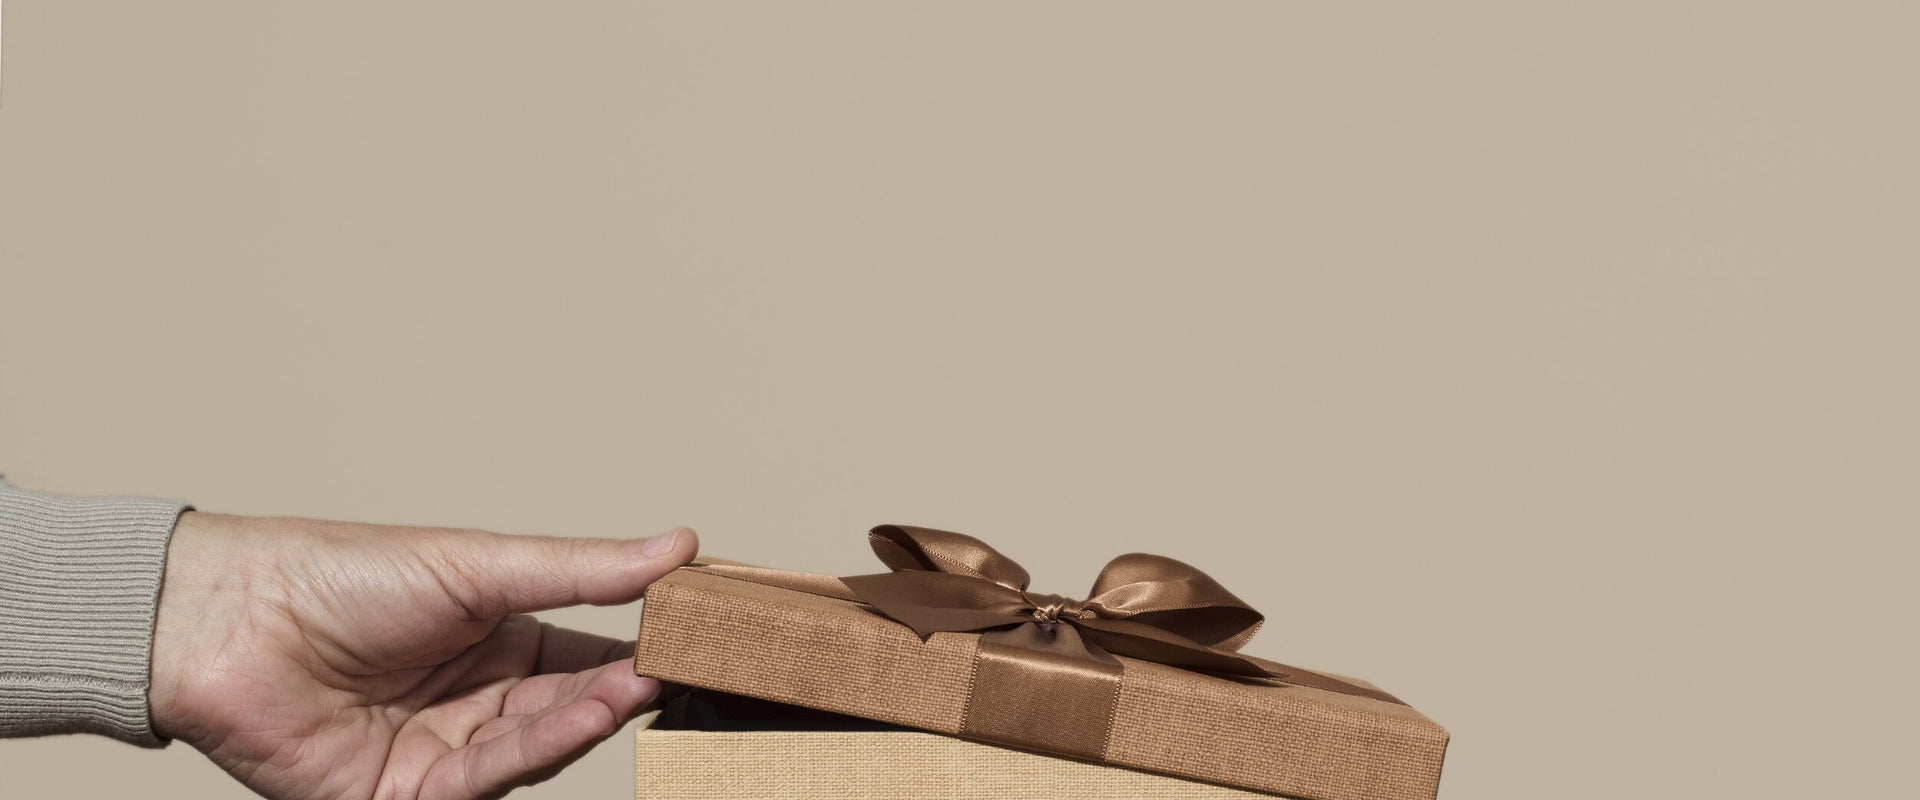 Business gifting made simple